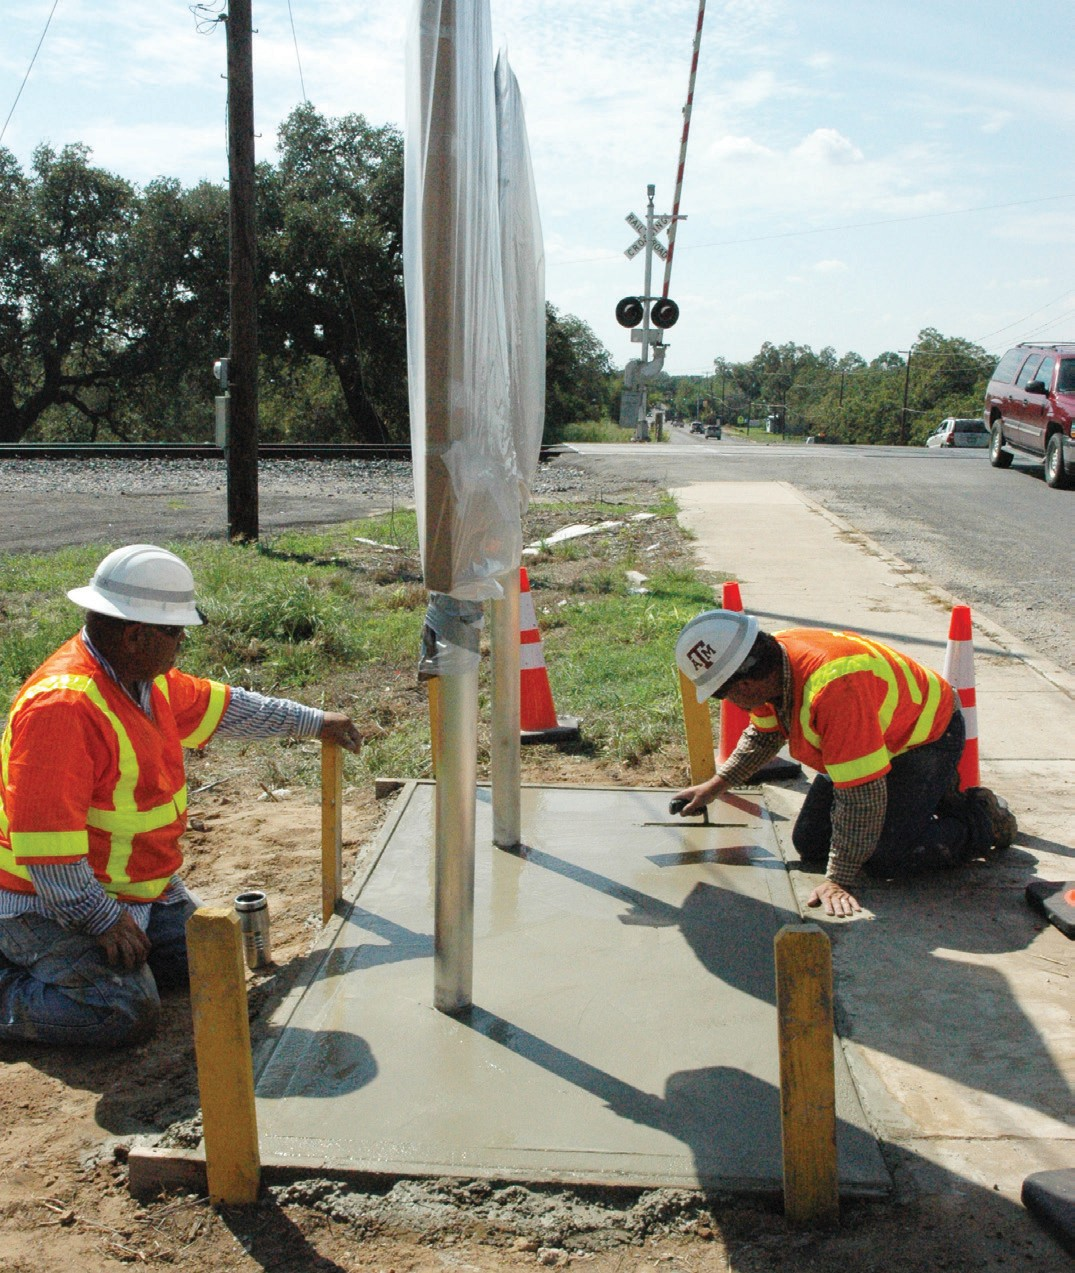 TxDOT employees, Johnny Hernandez (left) and Brian Jasik (right) put the finishing touches on the cement slab where two new markers - SAU&G Railroad and North Pleasanton - will be unveiled at the Atascosa Historical Commission's ceremony at 10 a.m. Saturday.